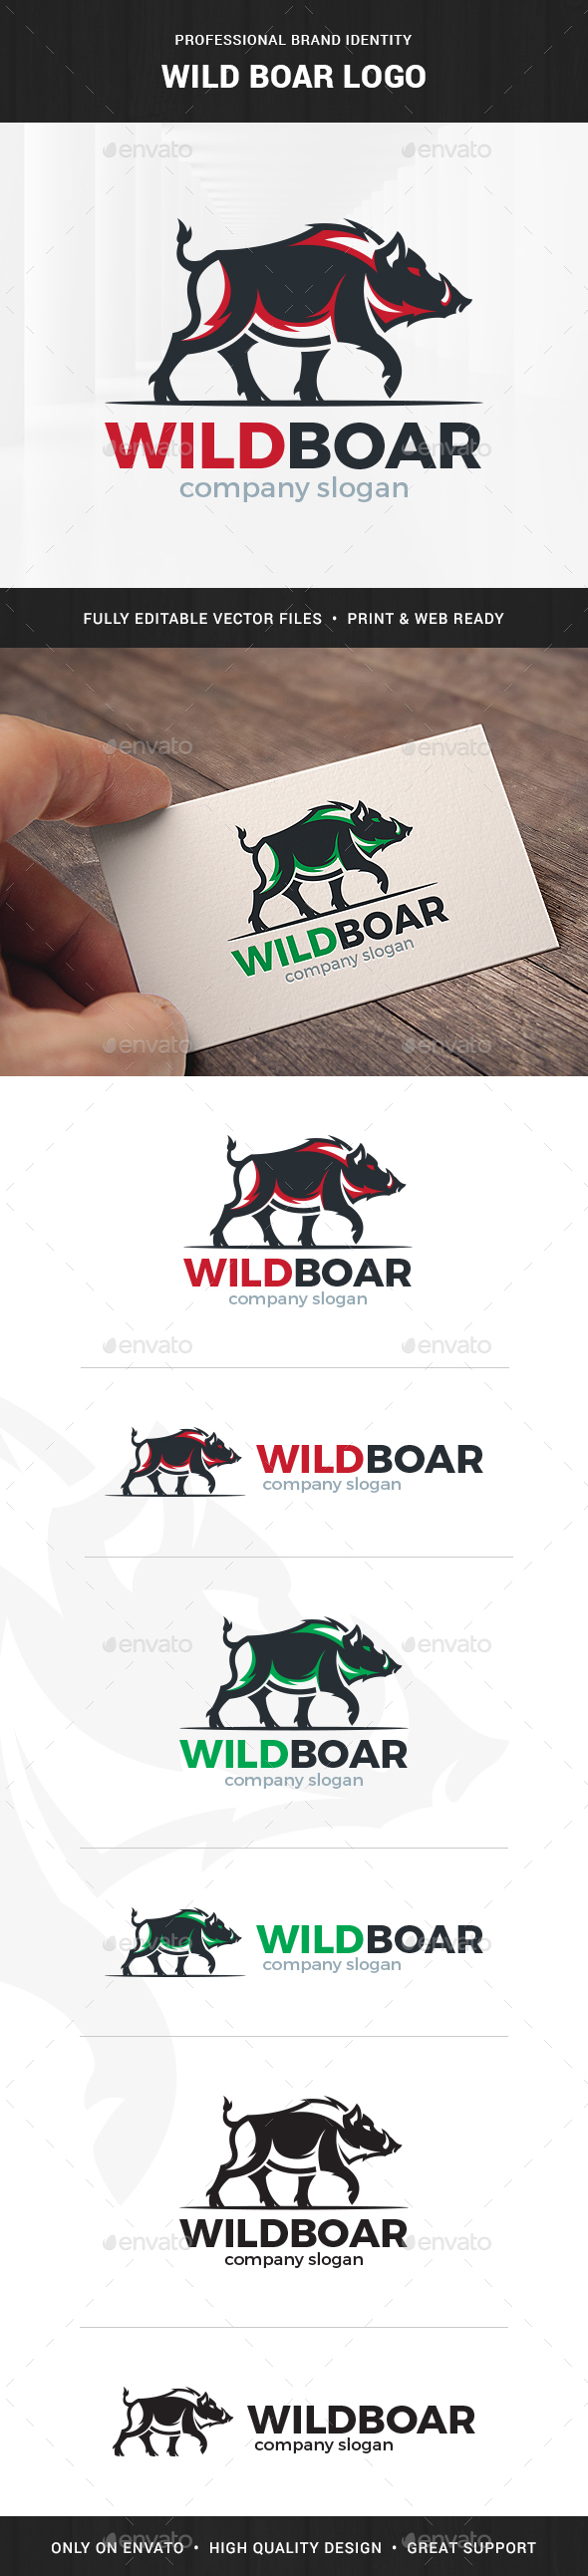 Wild Boar Logo Template - Animals Logo Templates